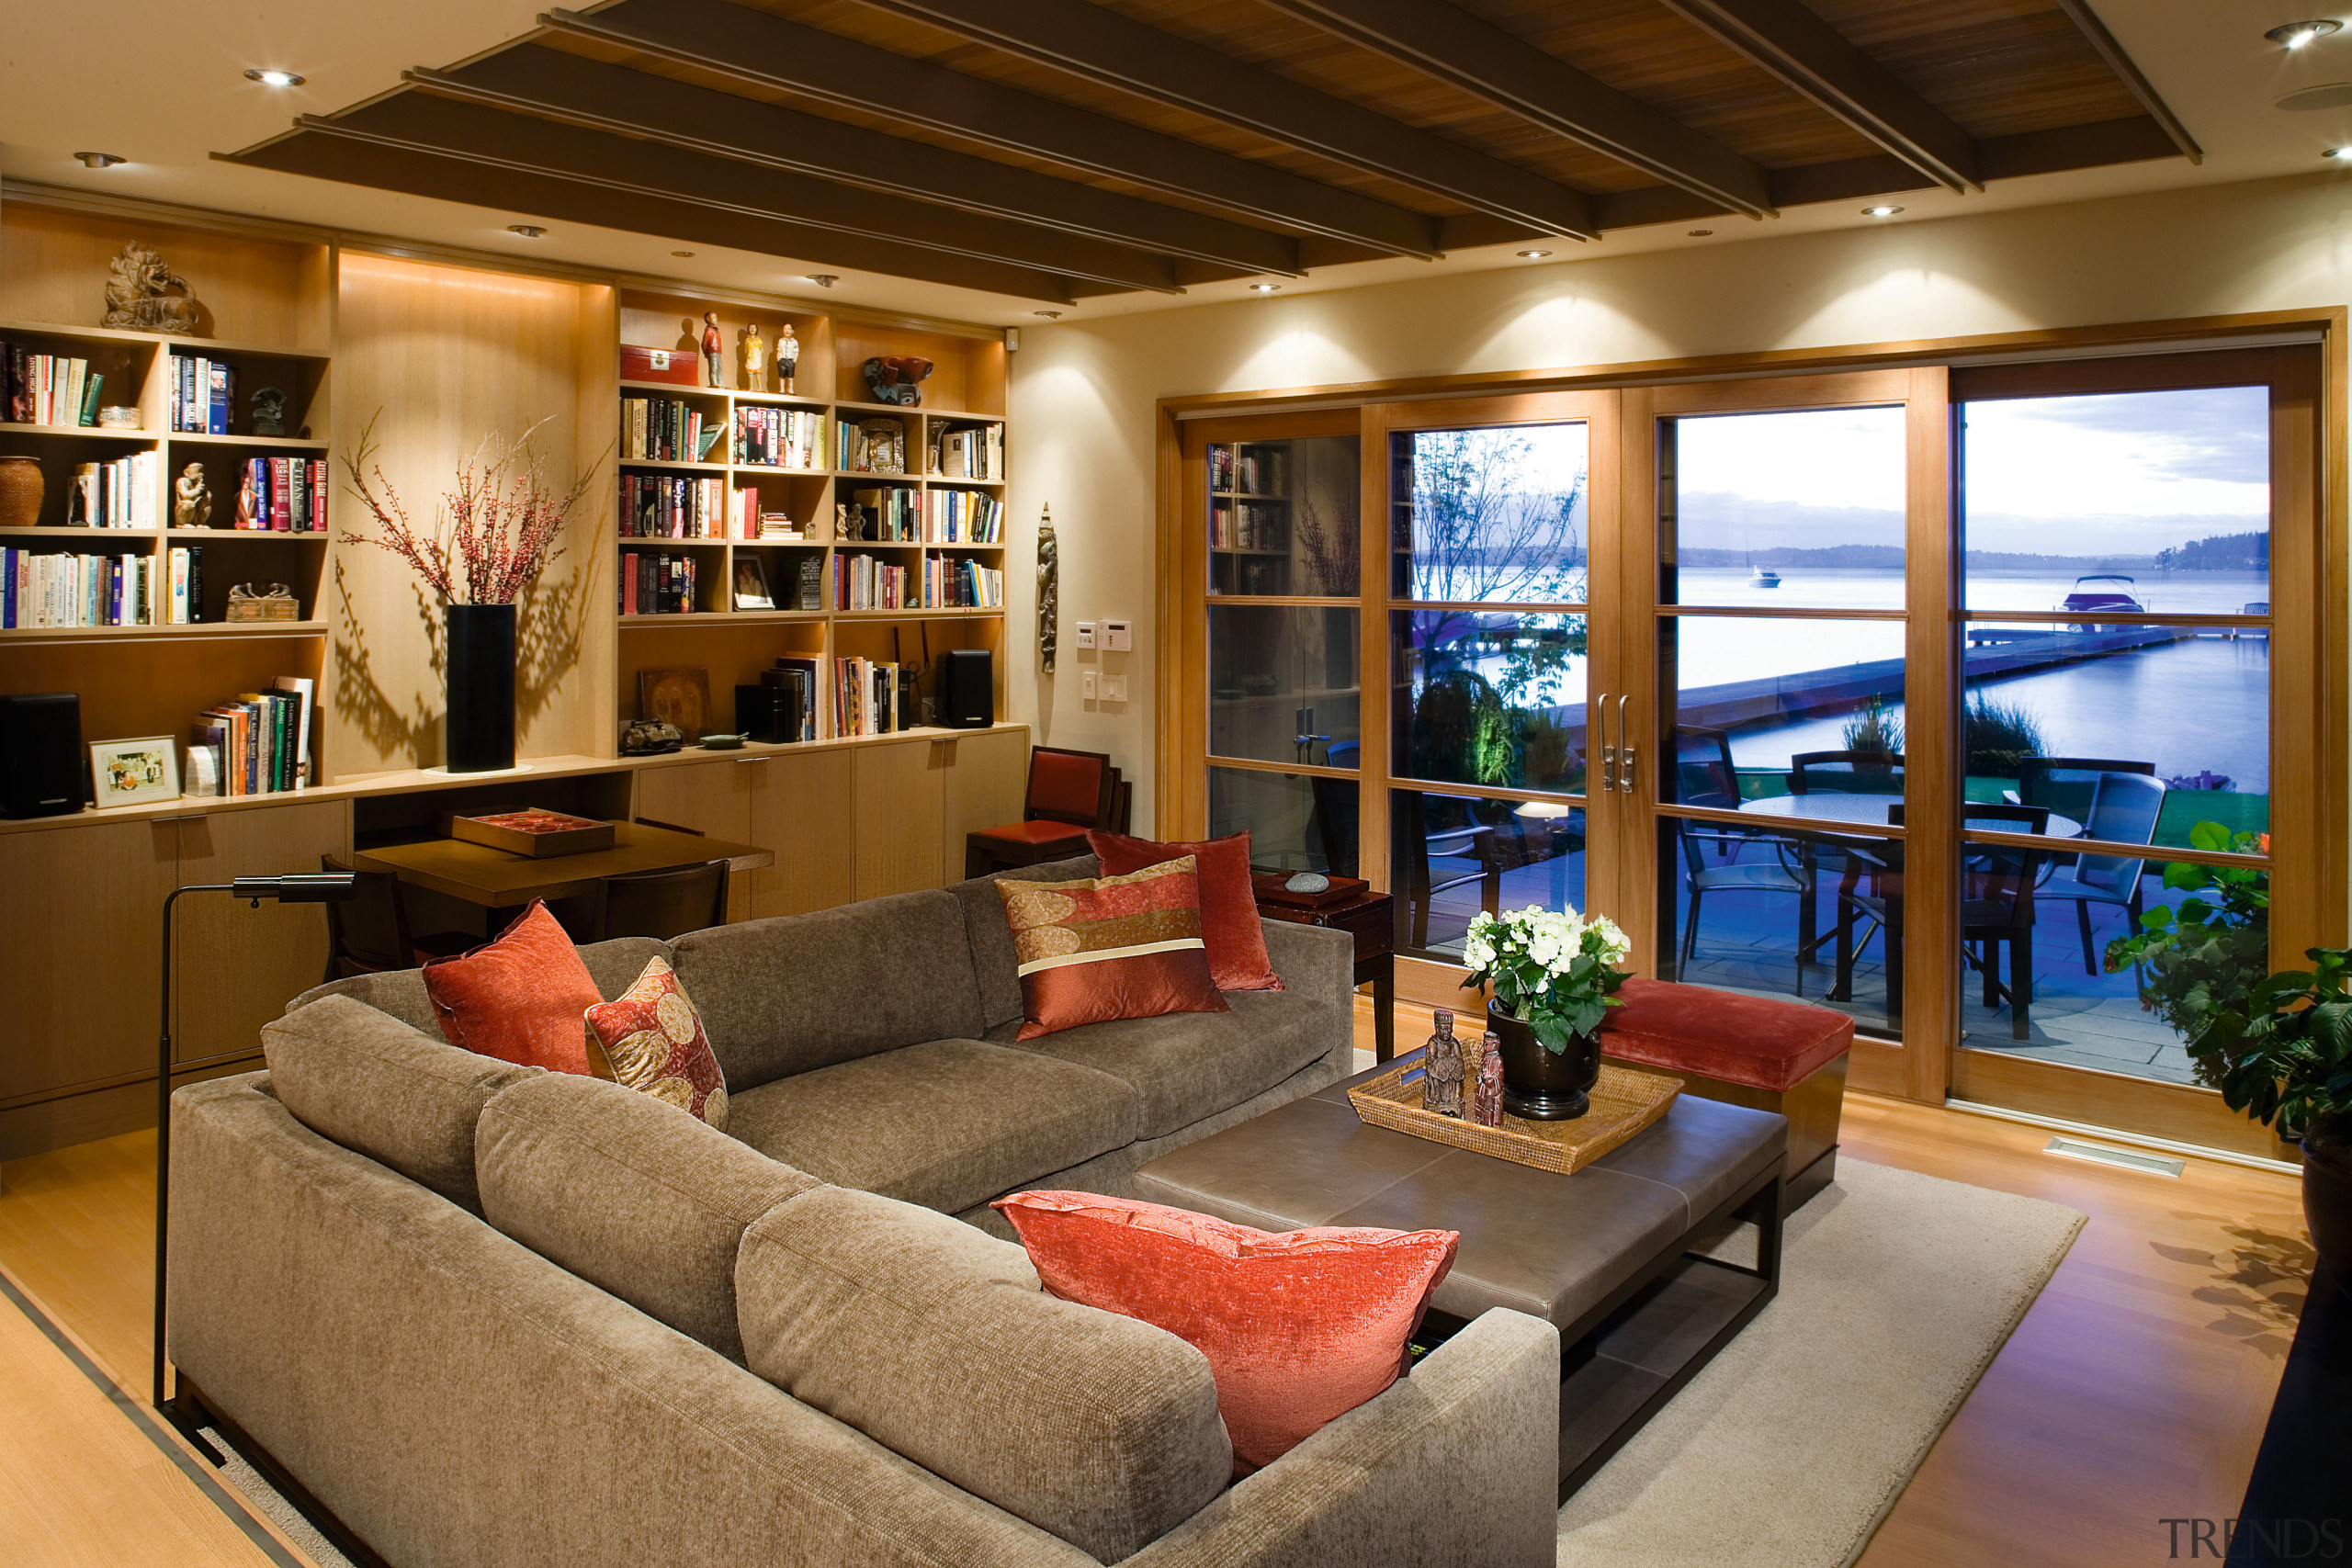 view of the formali living area looking out ceiling, home, interior design, living room, real estate, room, window, brown